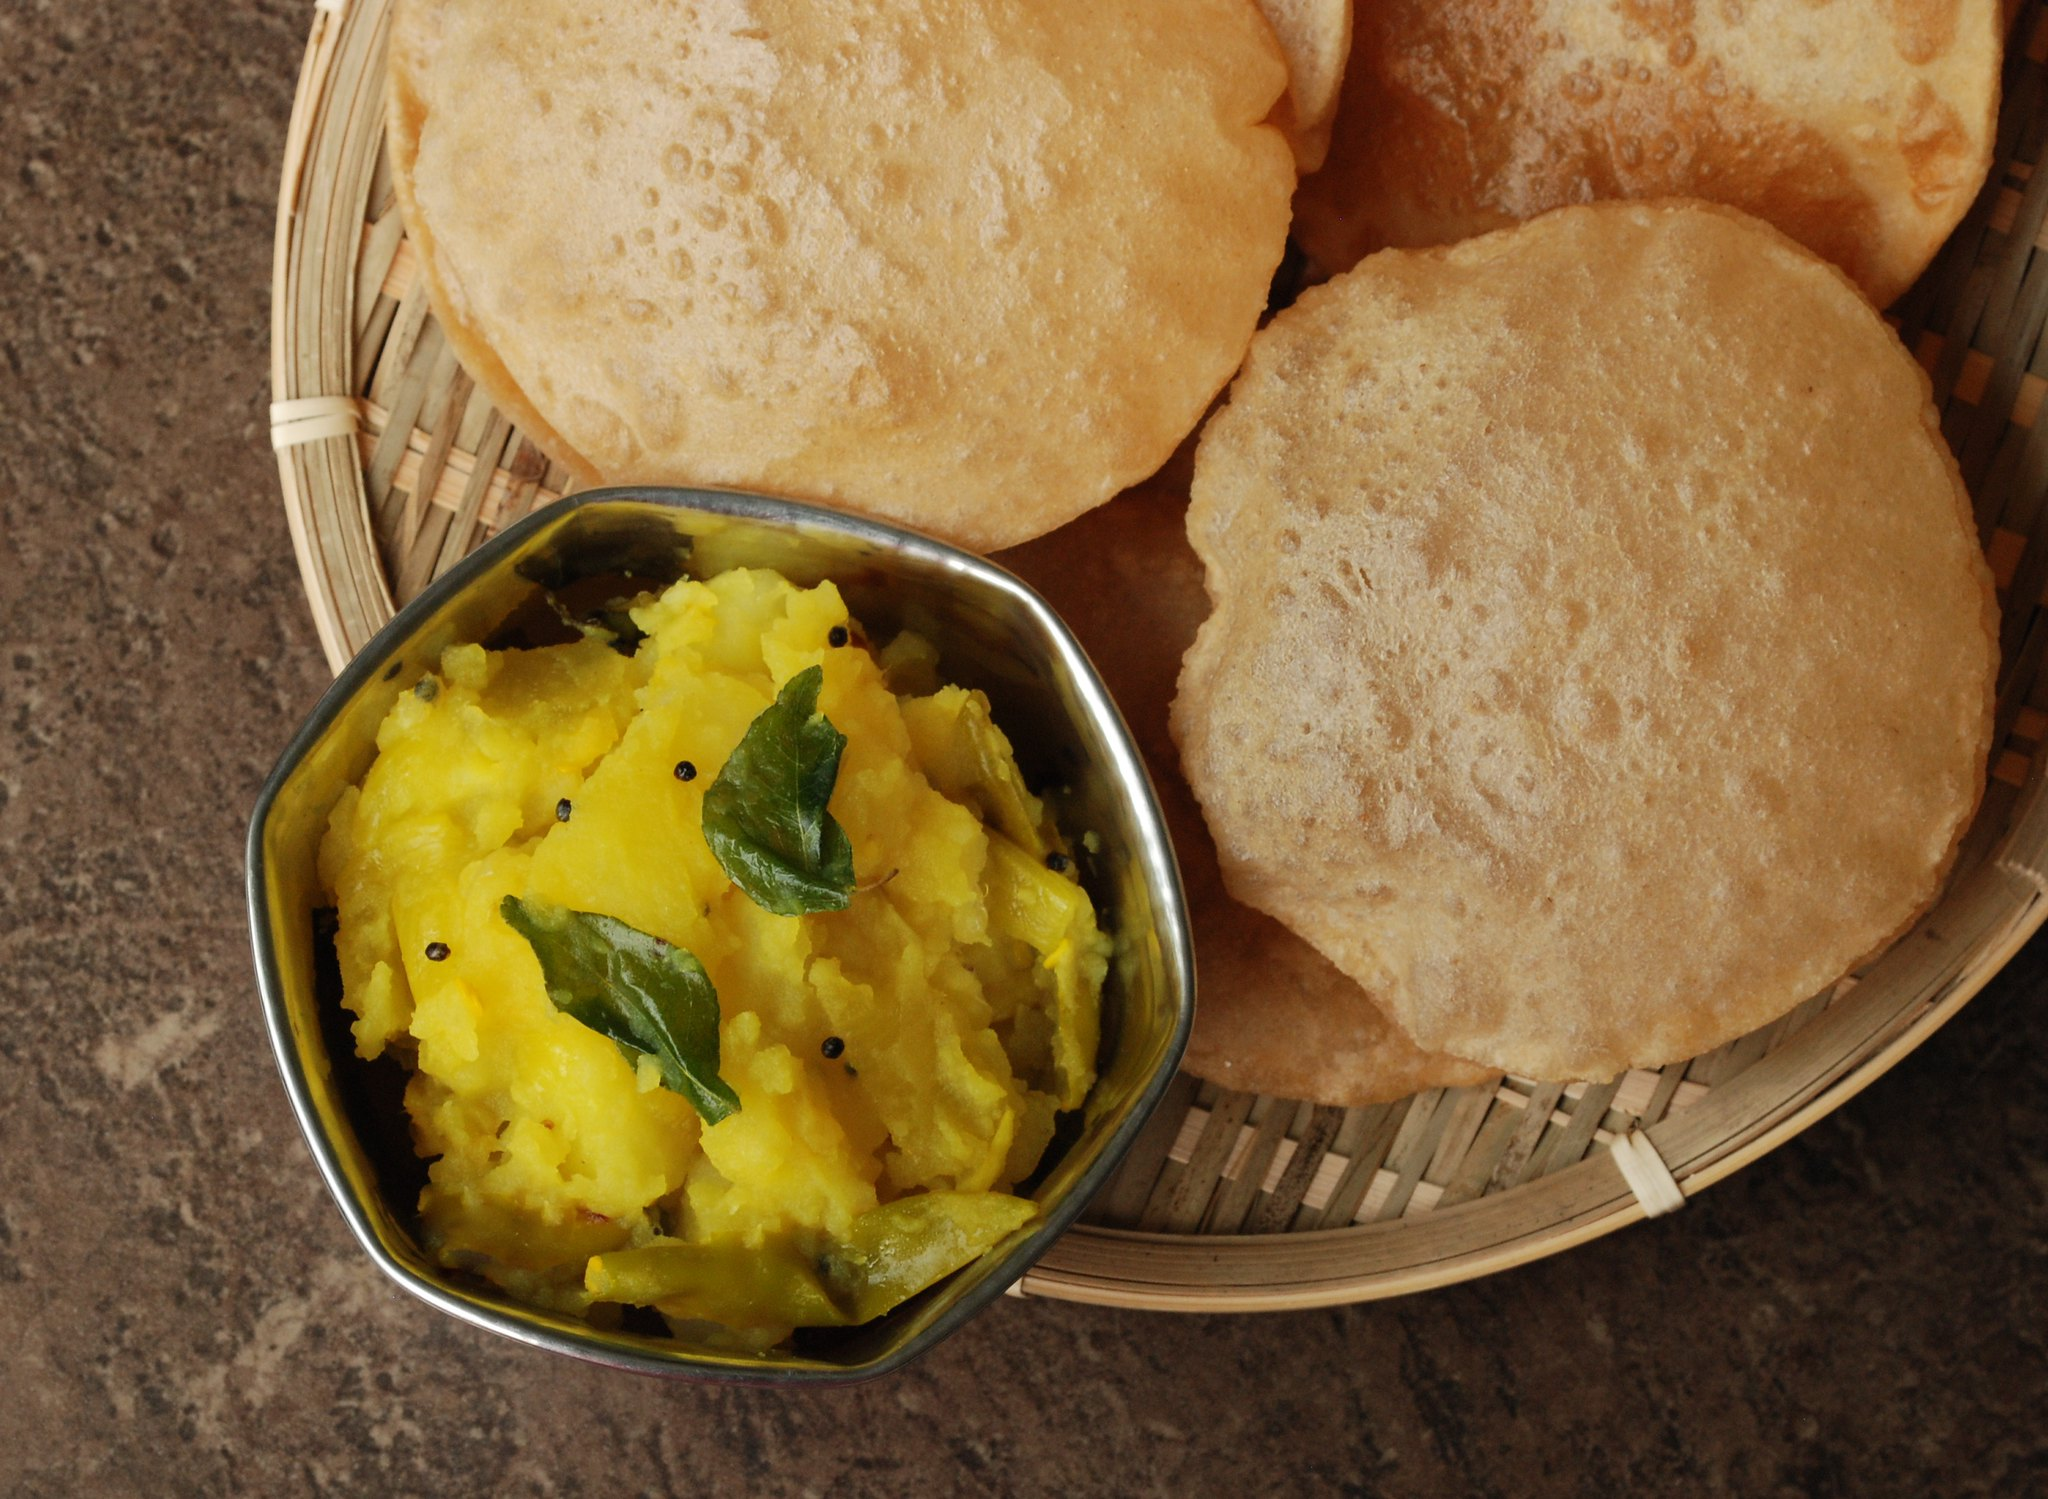 Poori - Bhaji - photo by Yummy O Yummy under CC BY 2.0